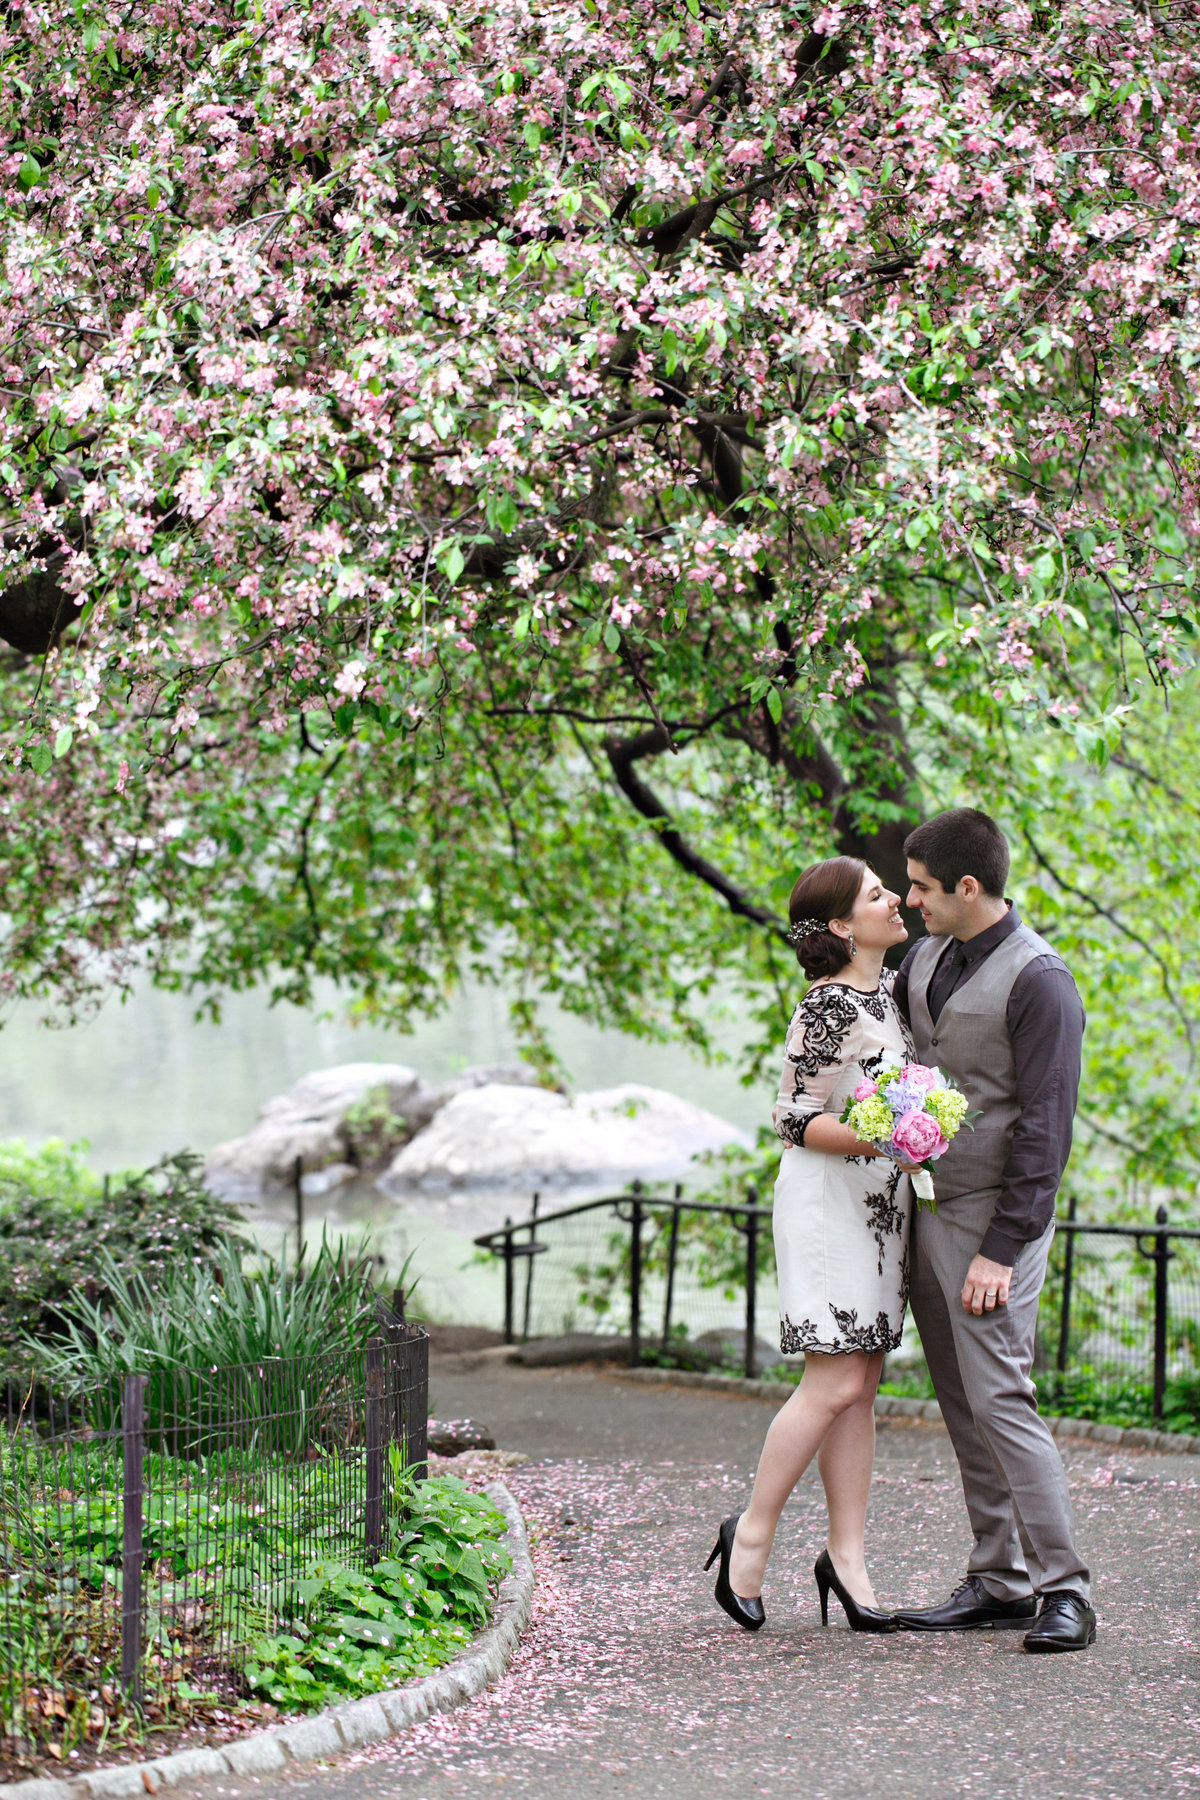 AmyAnaiz__Intimate_Elopement_Central_Park_Mantattan_New_York001